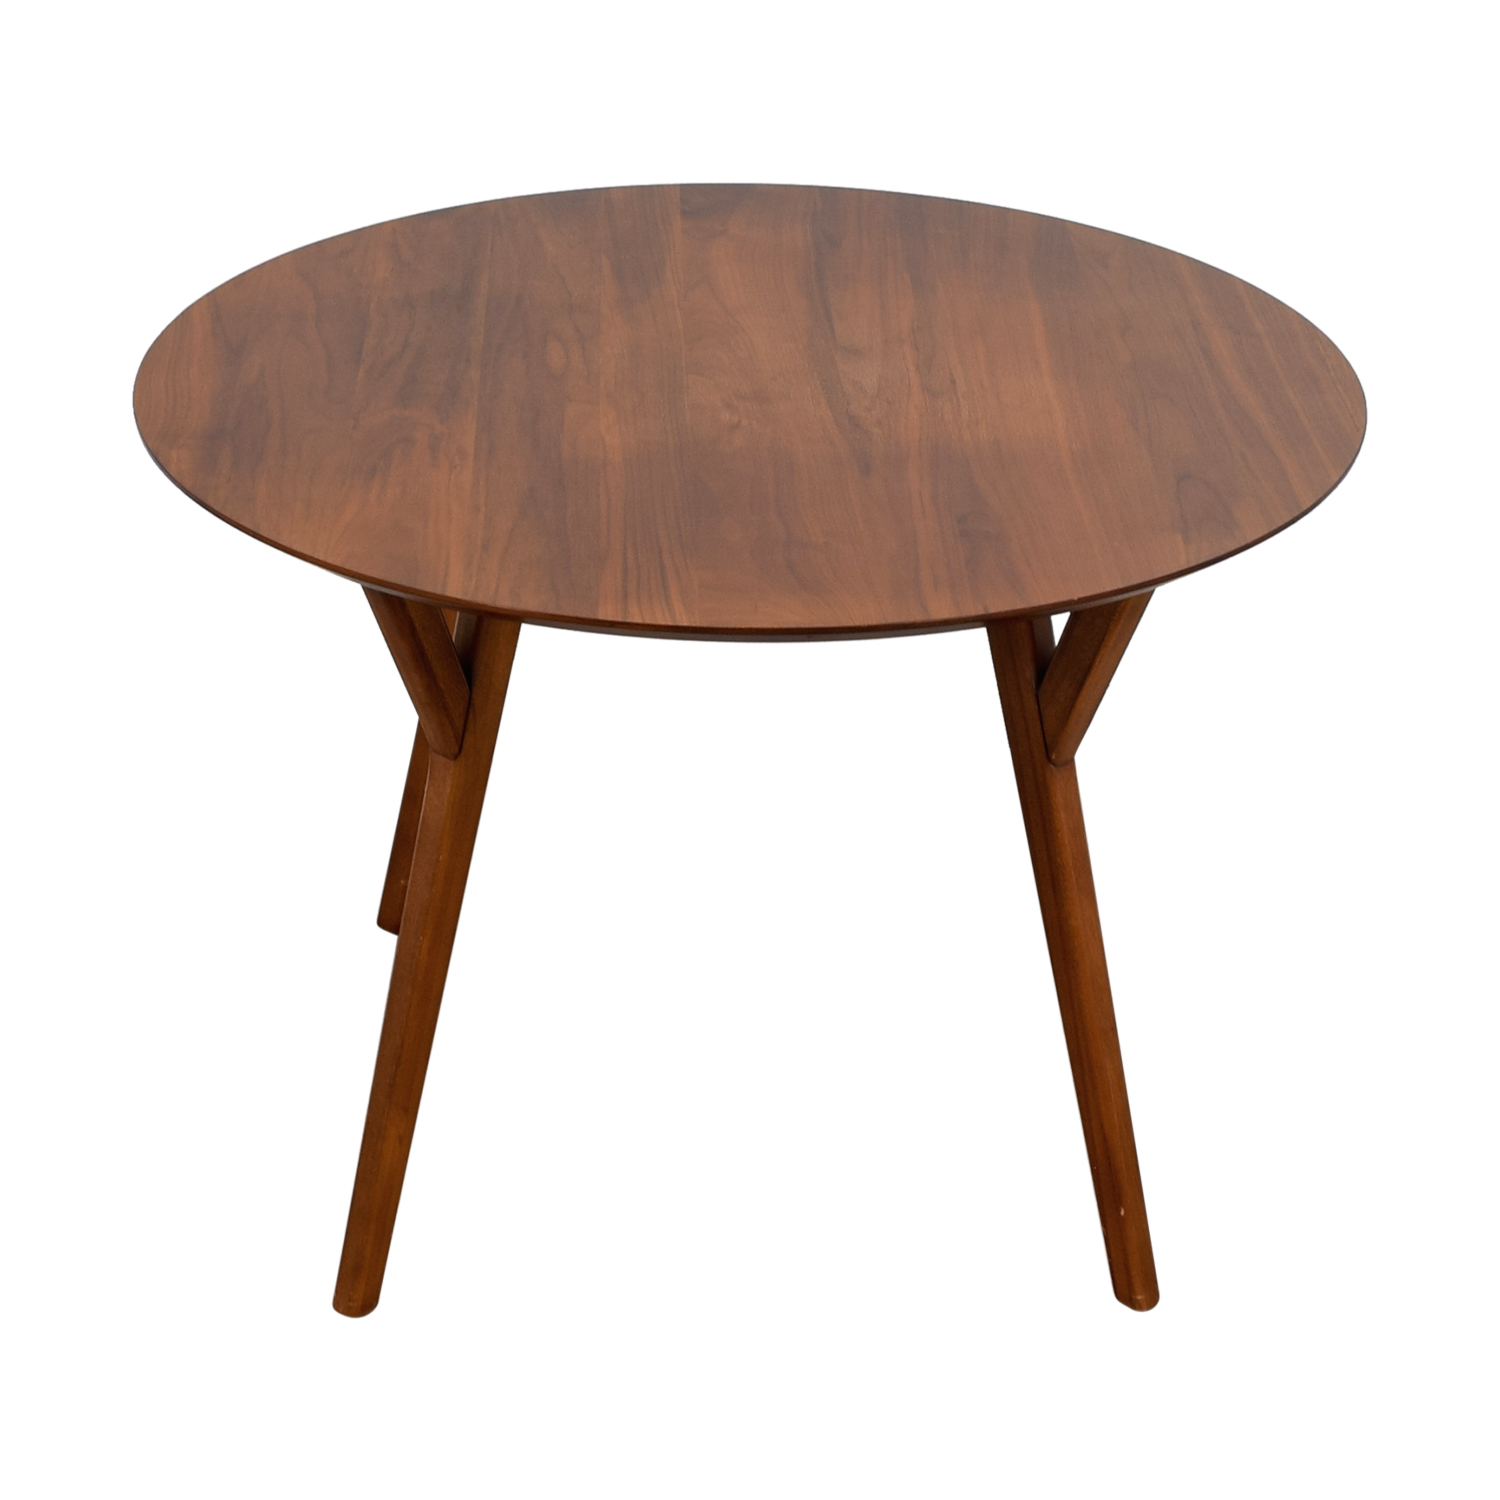 West elm west elm mid century walnut round dining table on sale